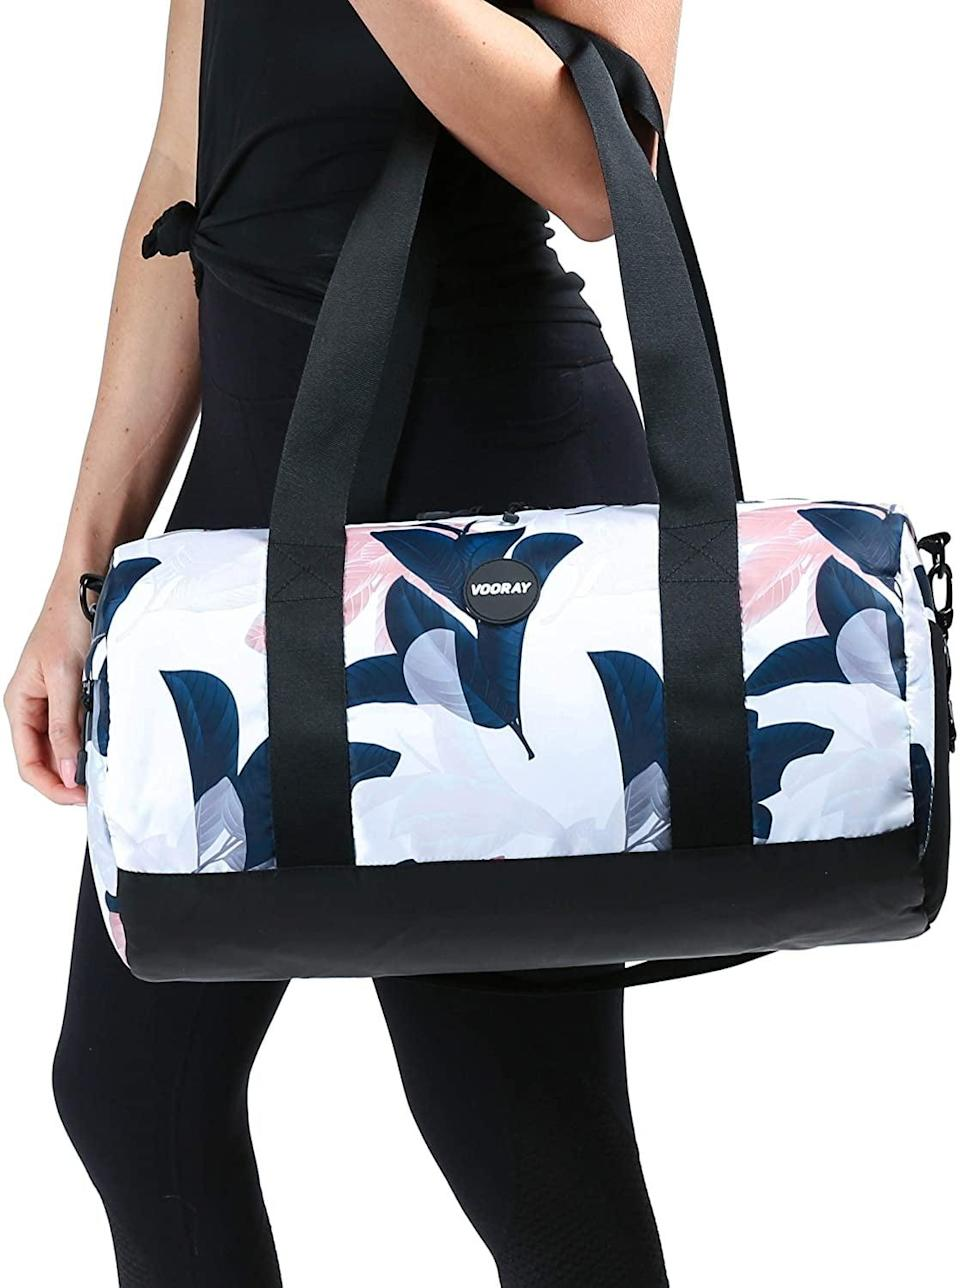 <p>The <span>Vooray Iconic Duffel Bag, Weekender Bag</span> ($30) comes in seven gorgeous colors and patterns that are so chic and stylish. Keep your gym gear organized with this bag.</p>